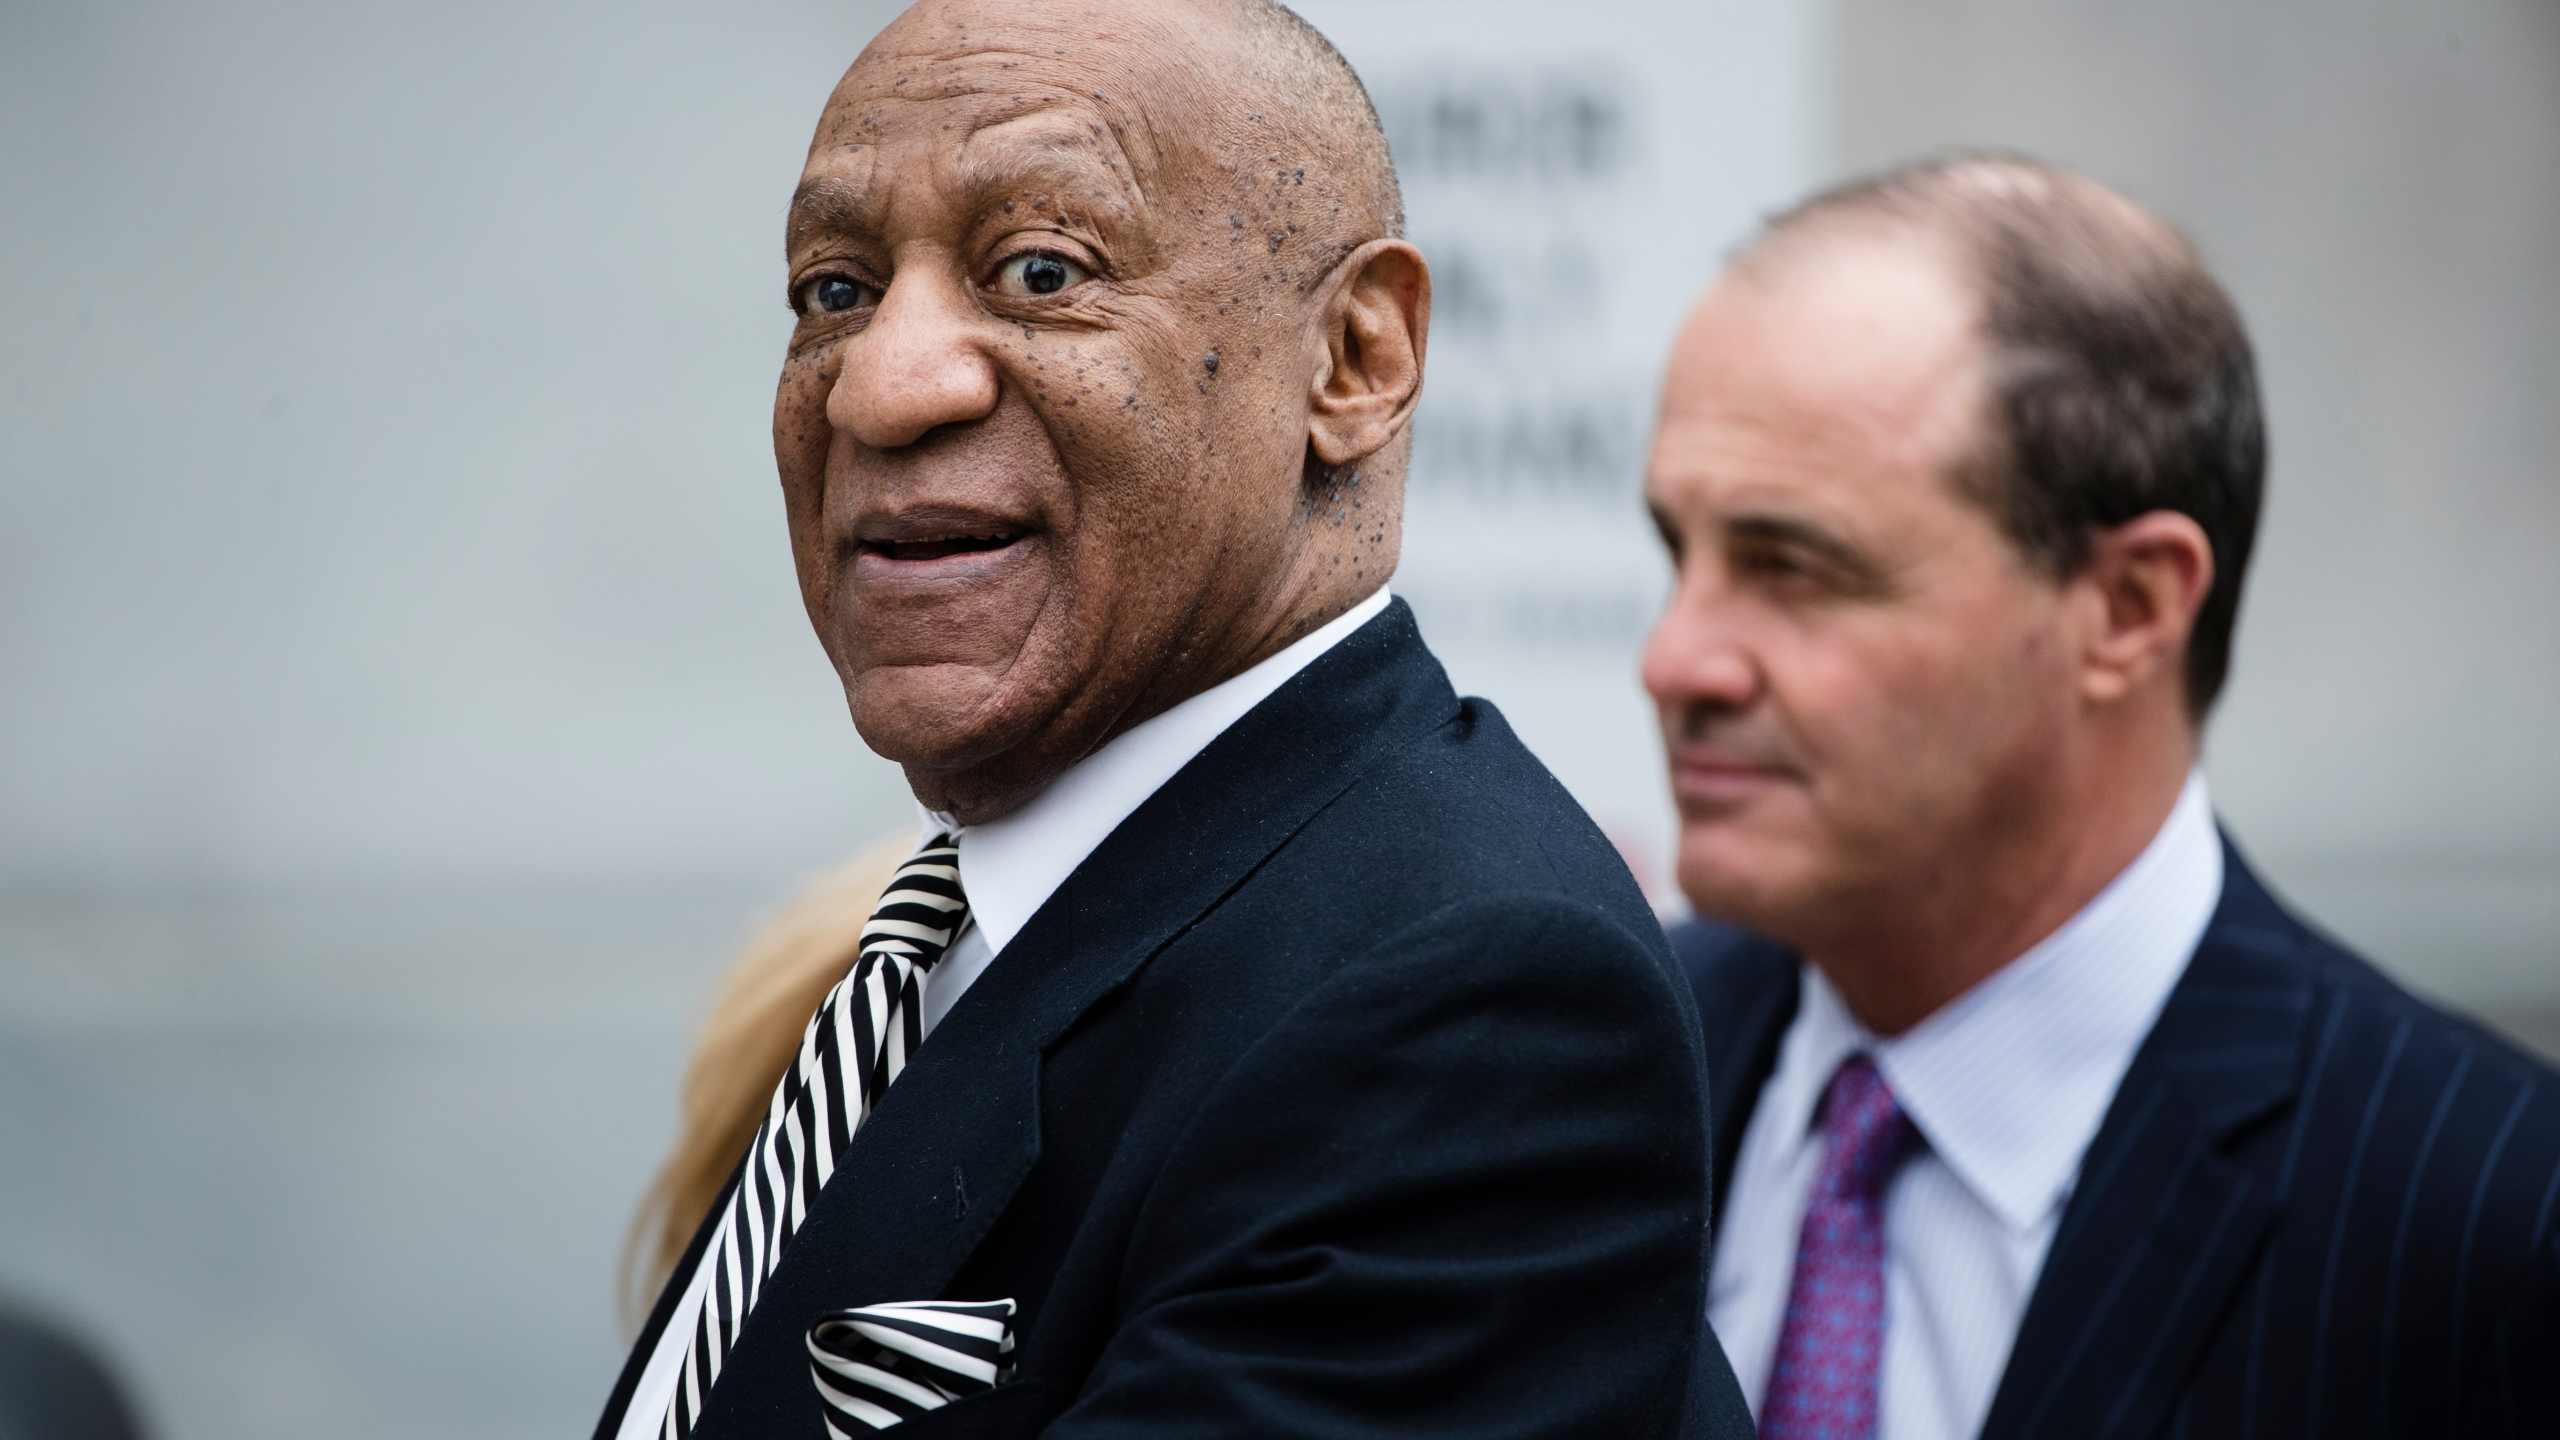 Bill Cosby Photo by Matt Rourke, AP Photo_311092